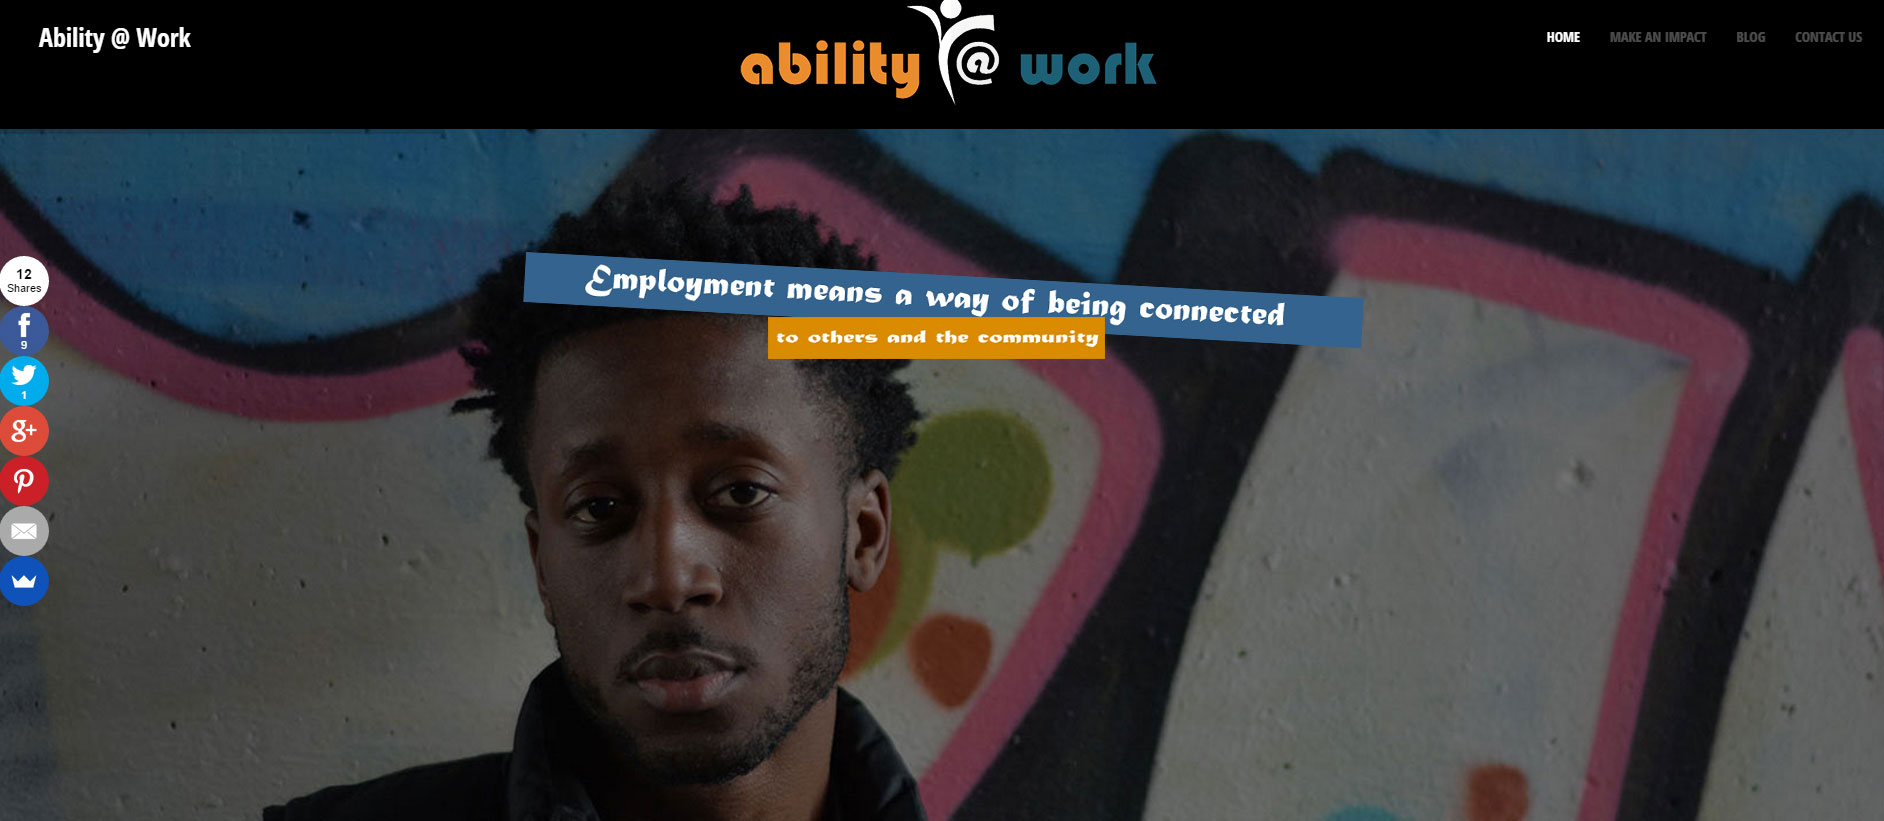 Ability-at-work-1